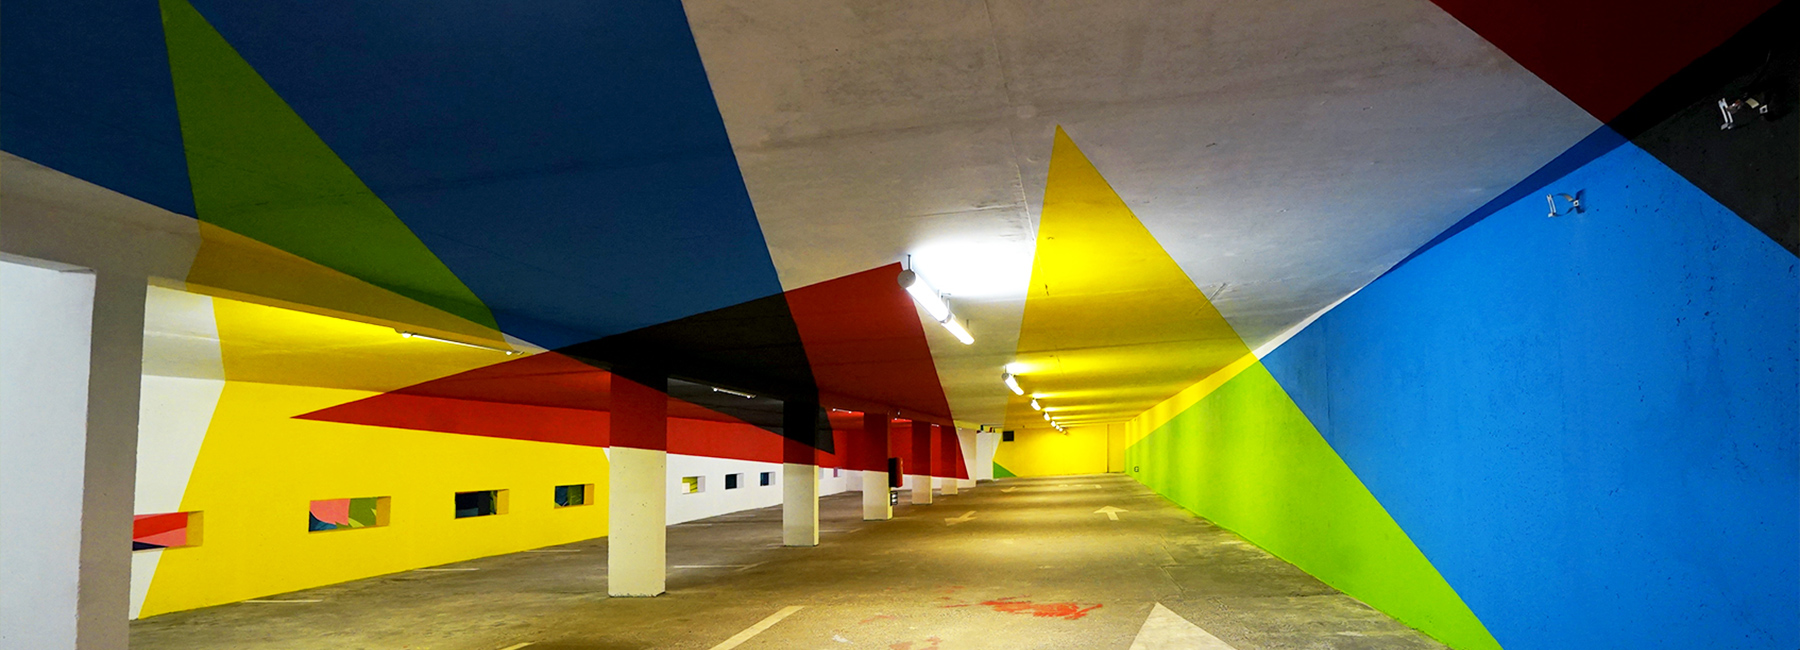 elian chali turns a parking lot in france into an